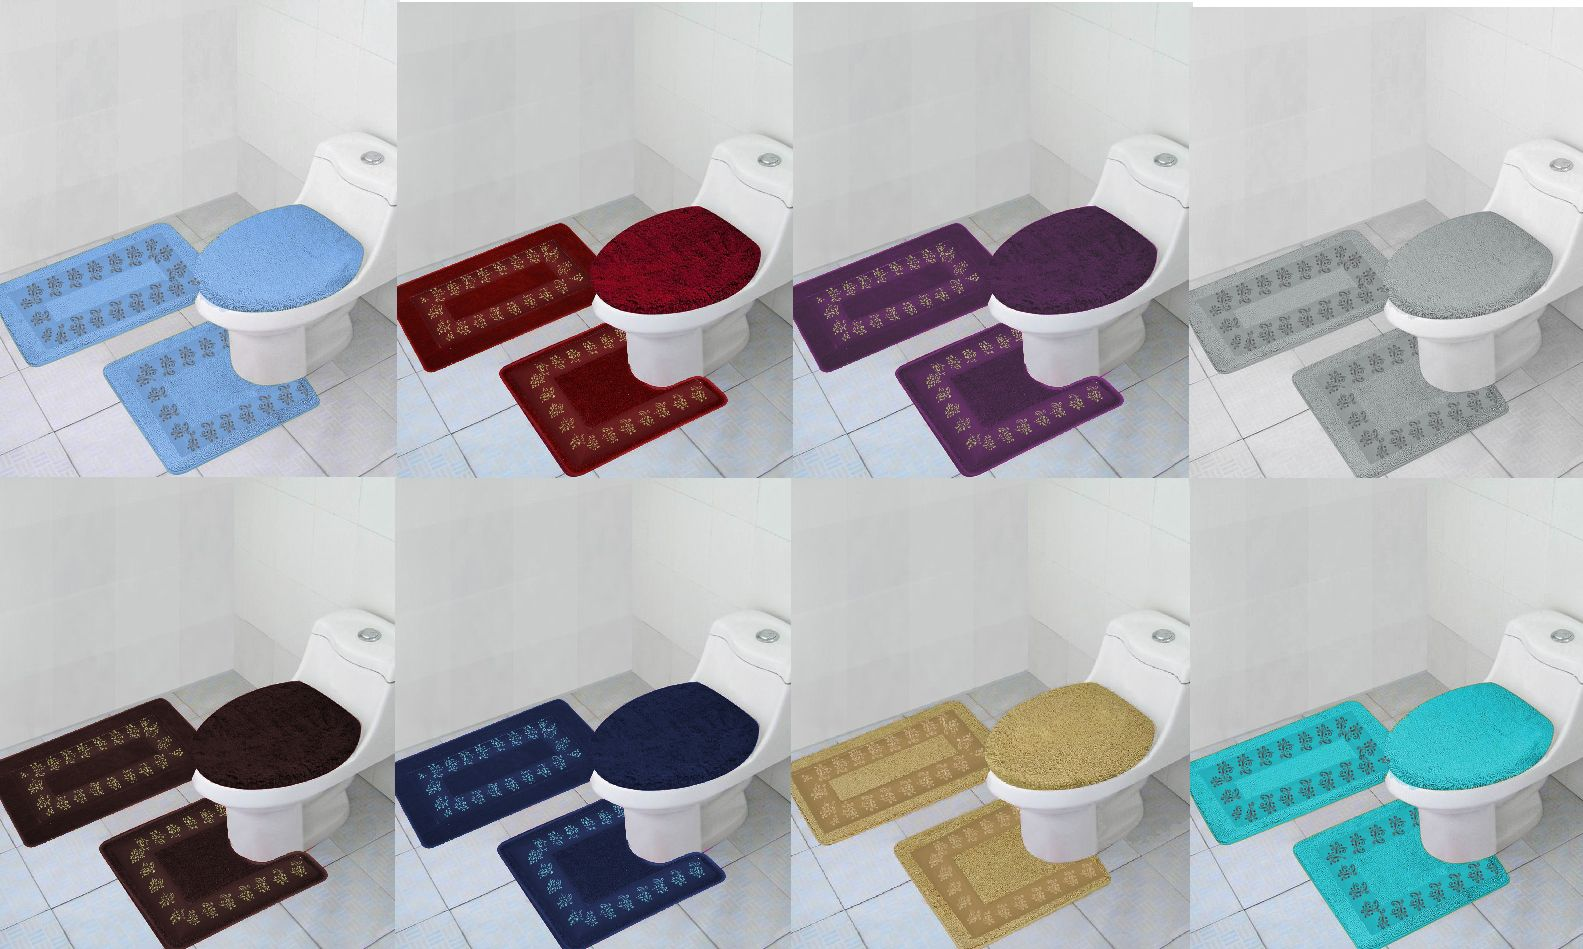 Bathmats Rugs And Toilet Covers 133696 3pc Bathroom Contour Mat Toilet Lid Cover Set Solid Bathmats Many Color And Styles B Contour Mat Toilet Covers Cover